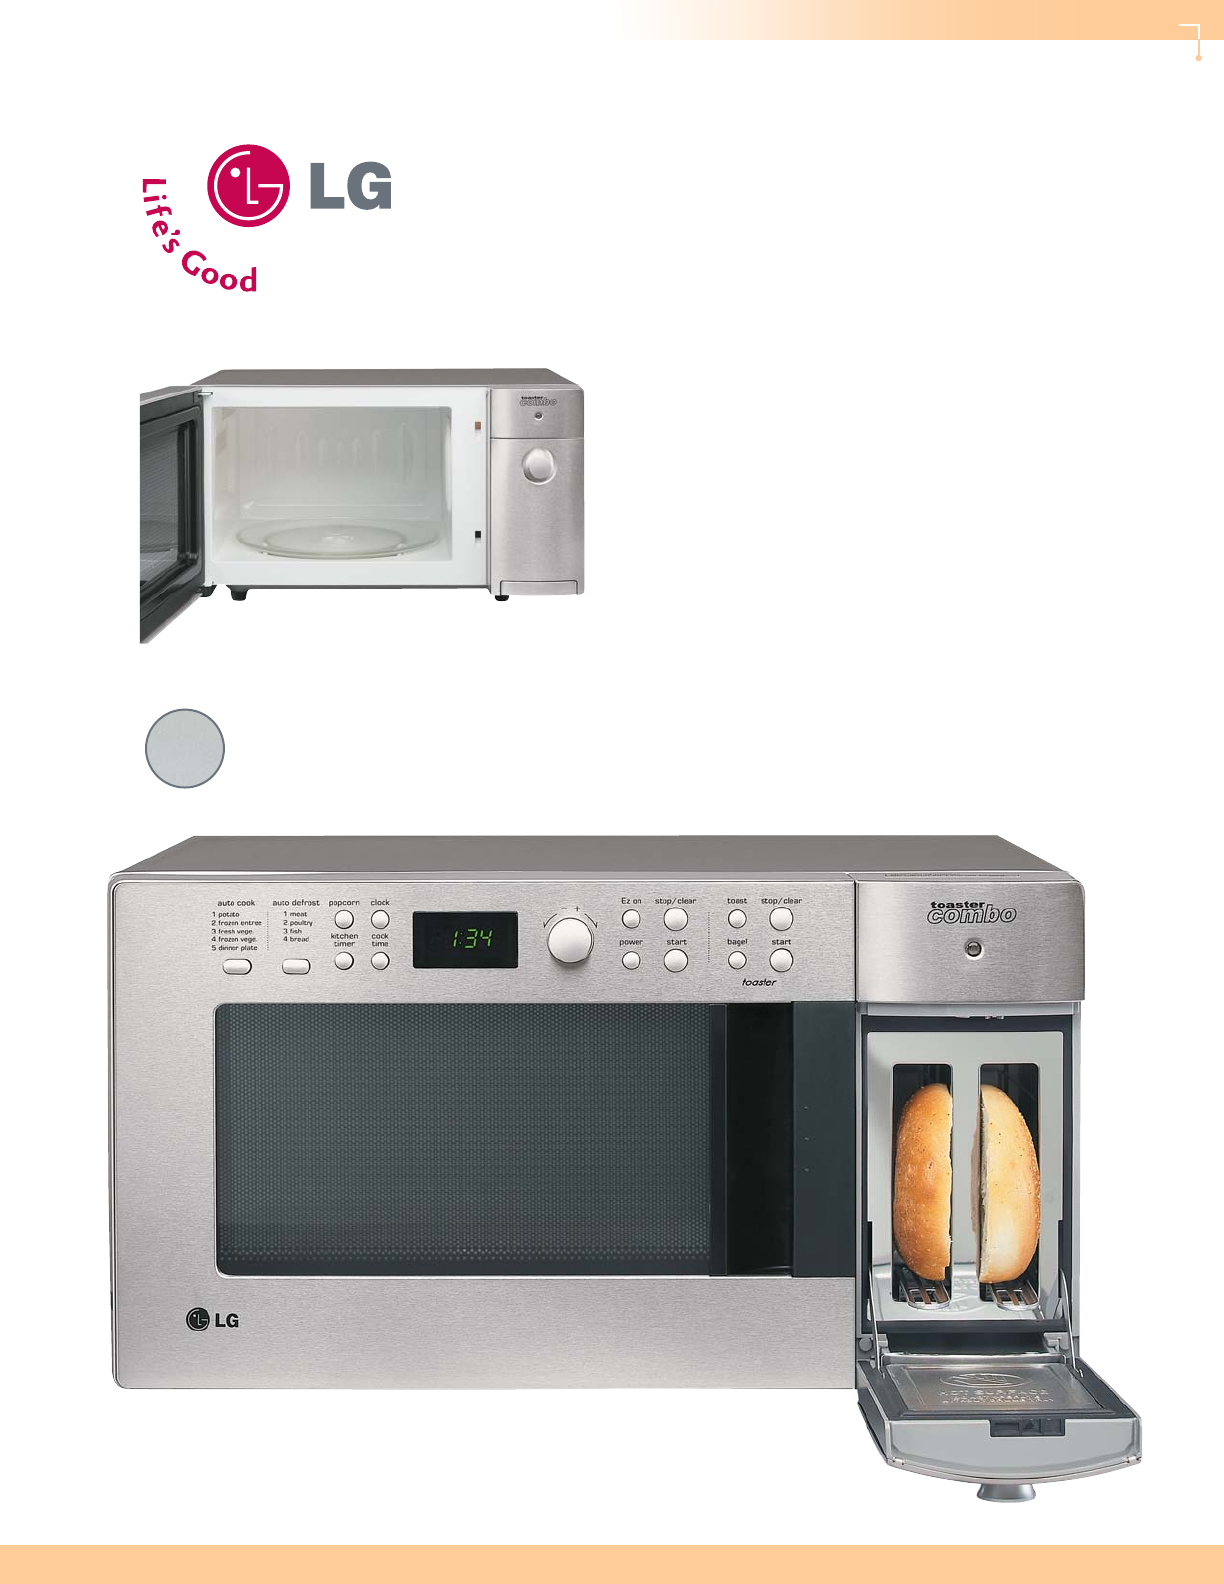 Lg Electronics Ltm9000 Oven User Manual